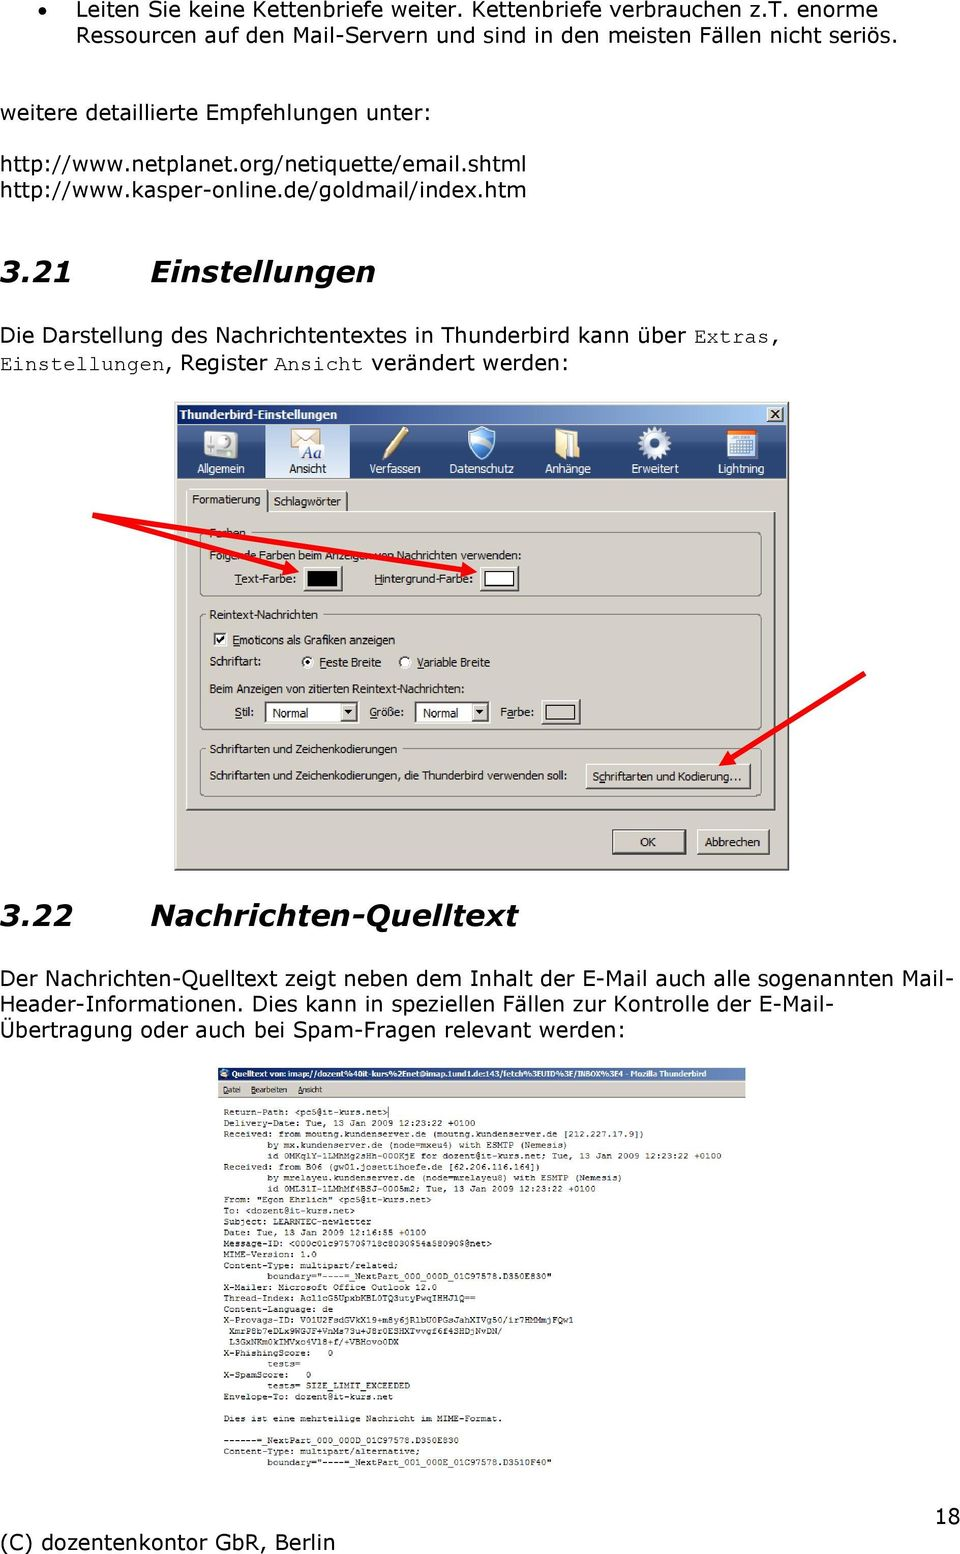 sprache thunderbird einstellen